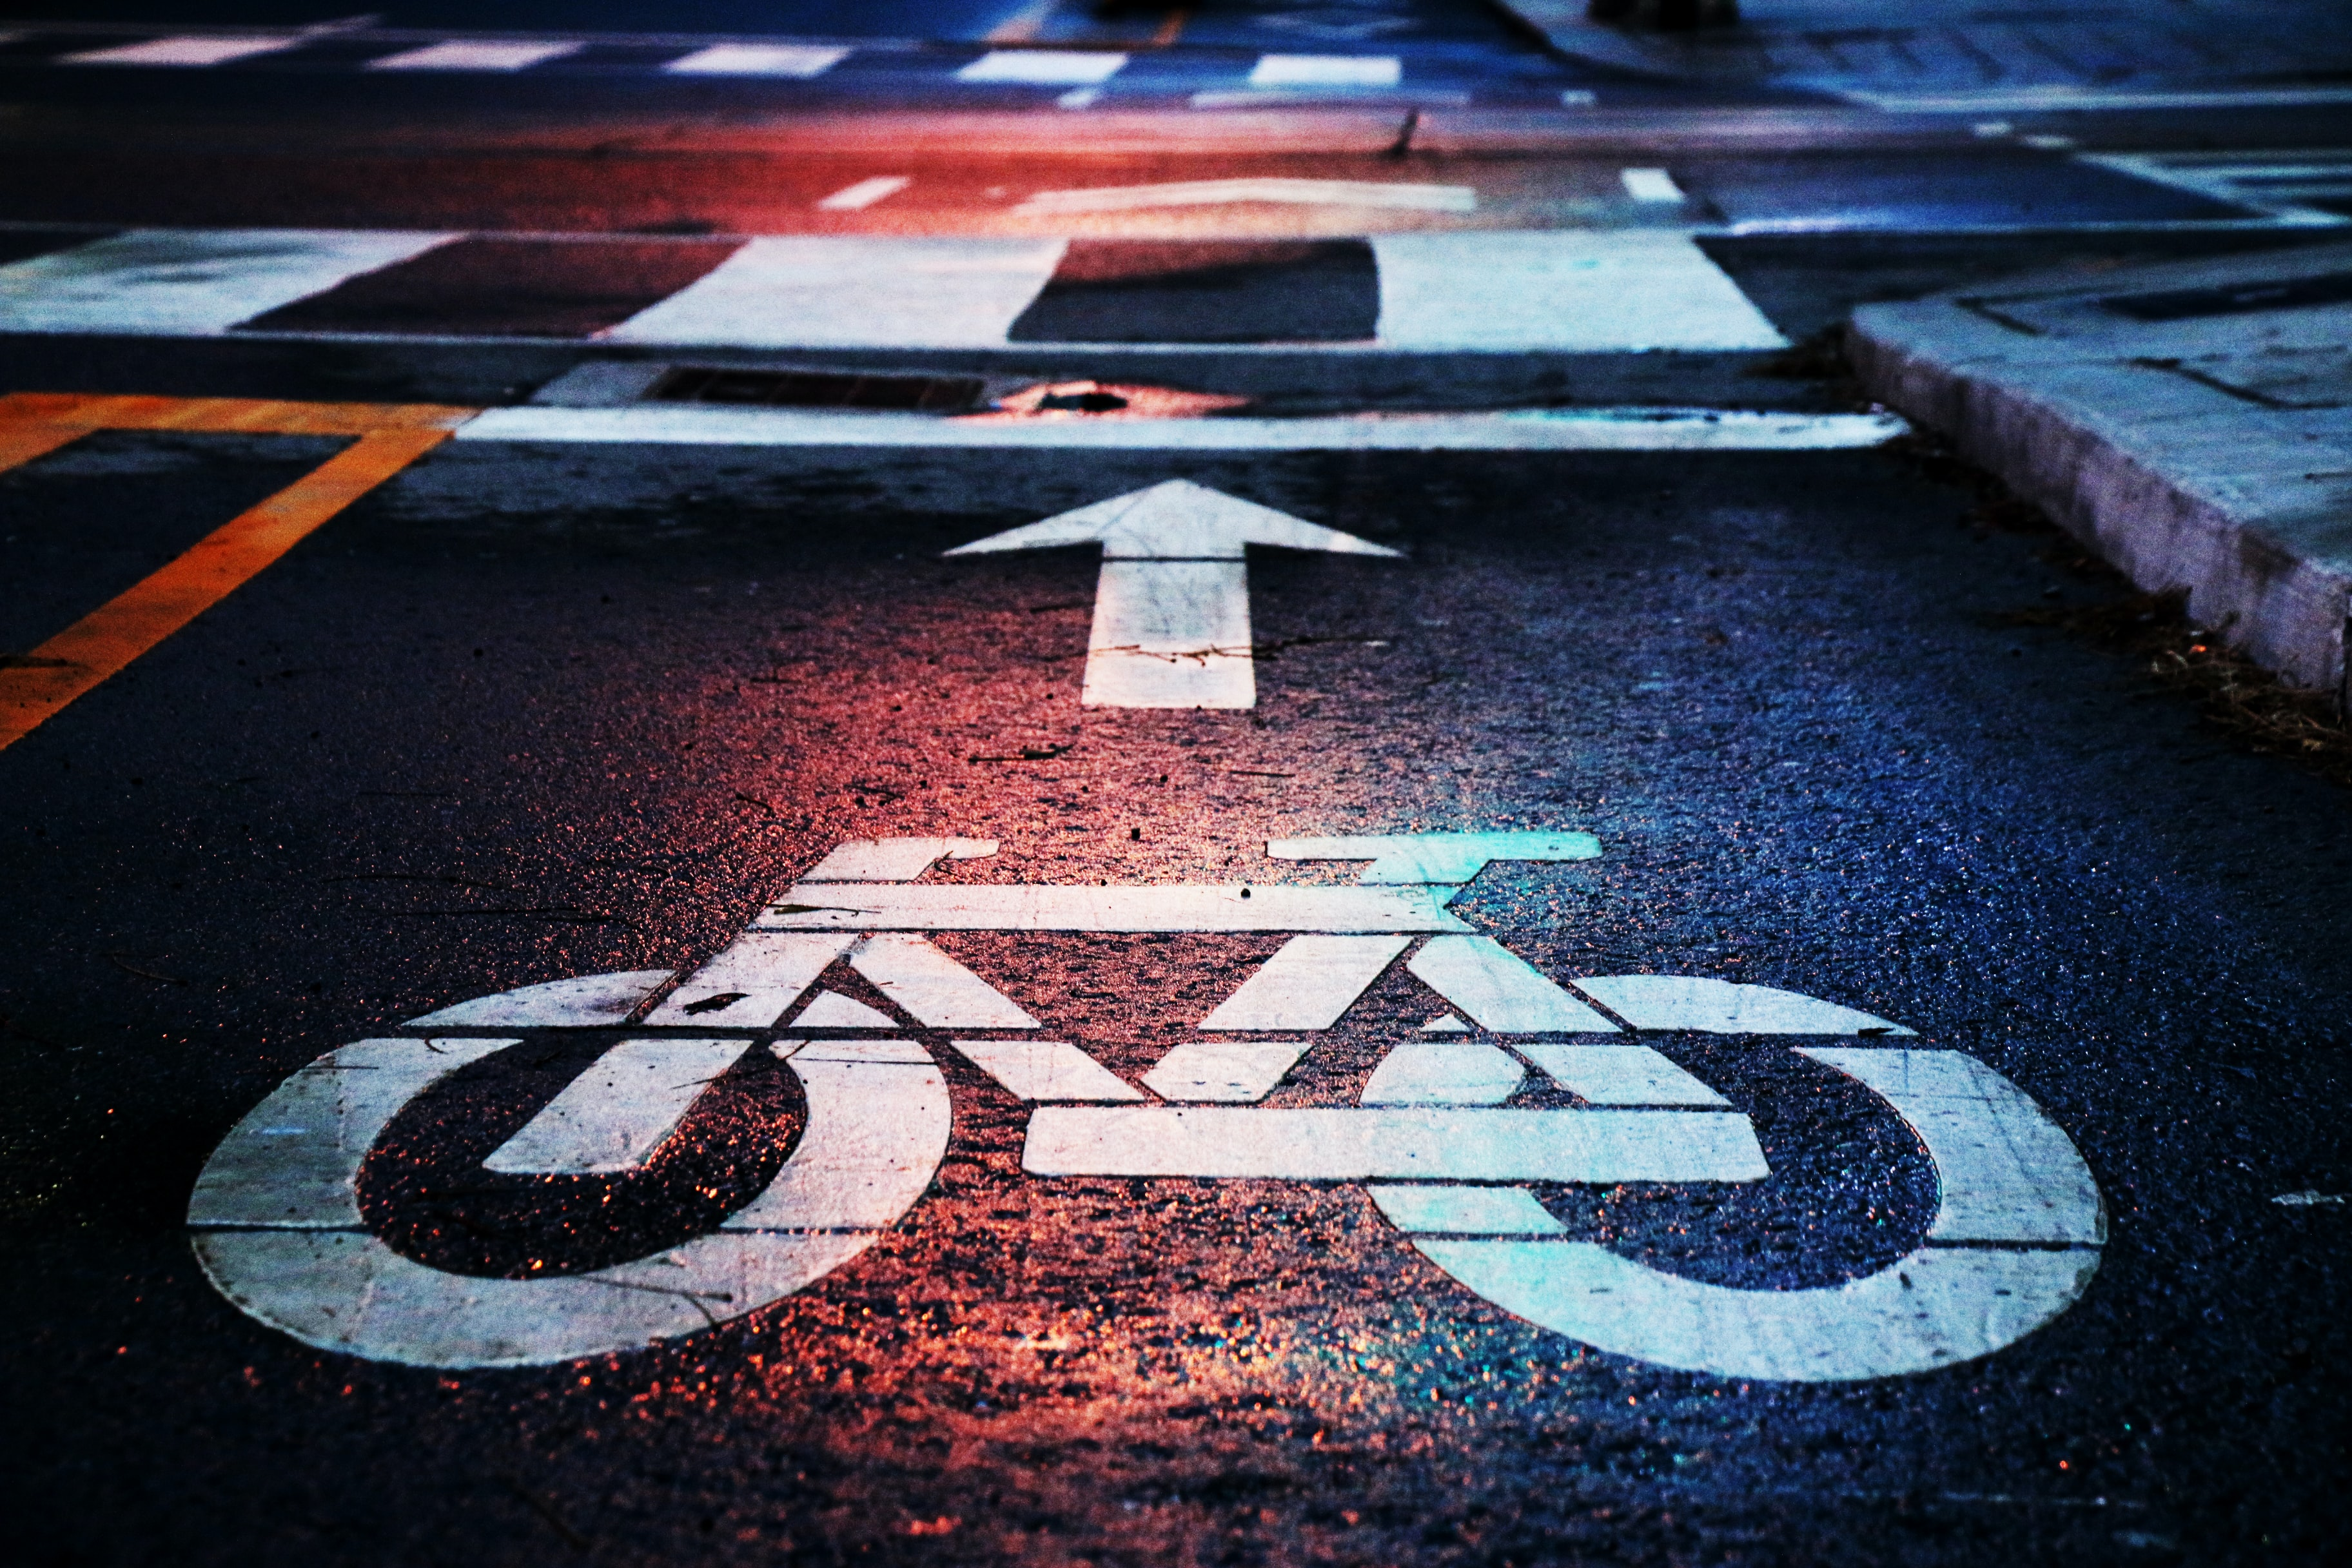 Macro of white bike lane markings on a street at night near a crosswalk